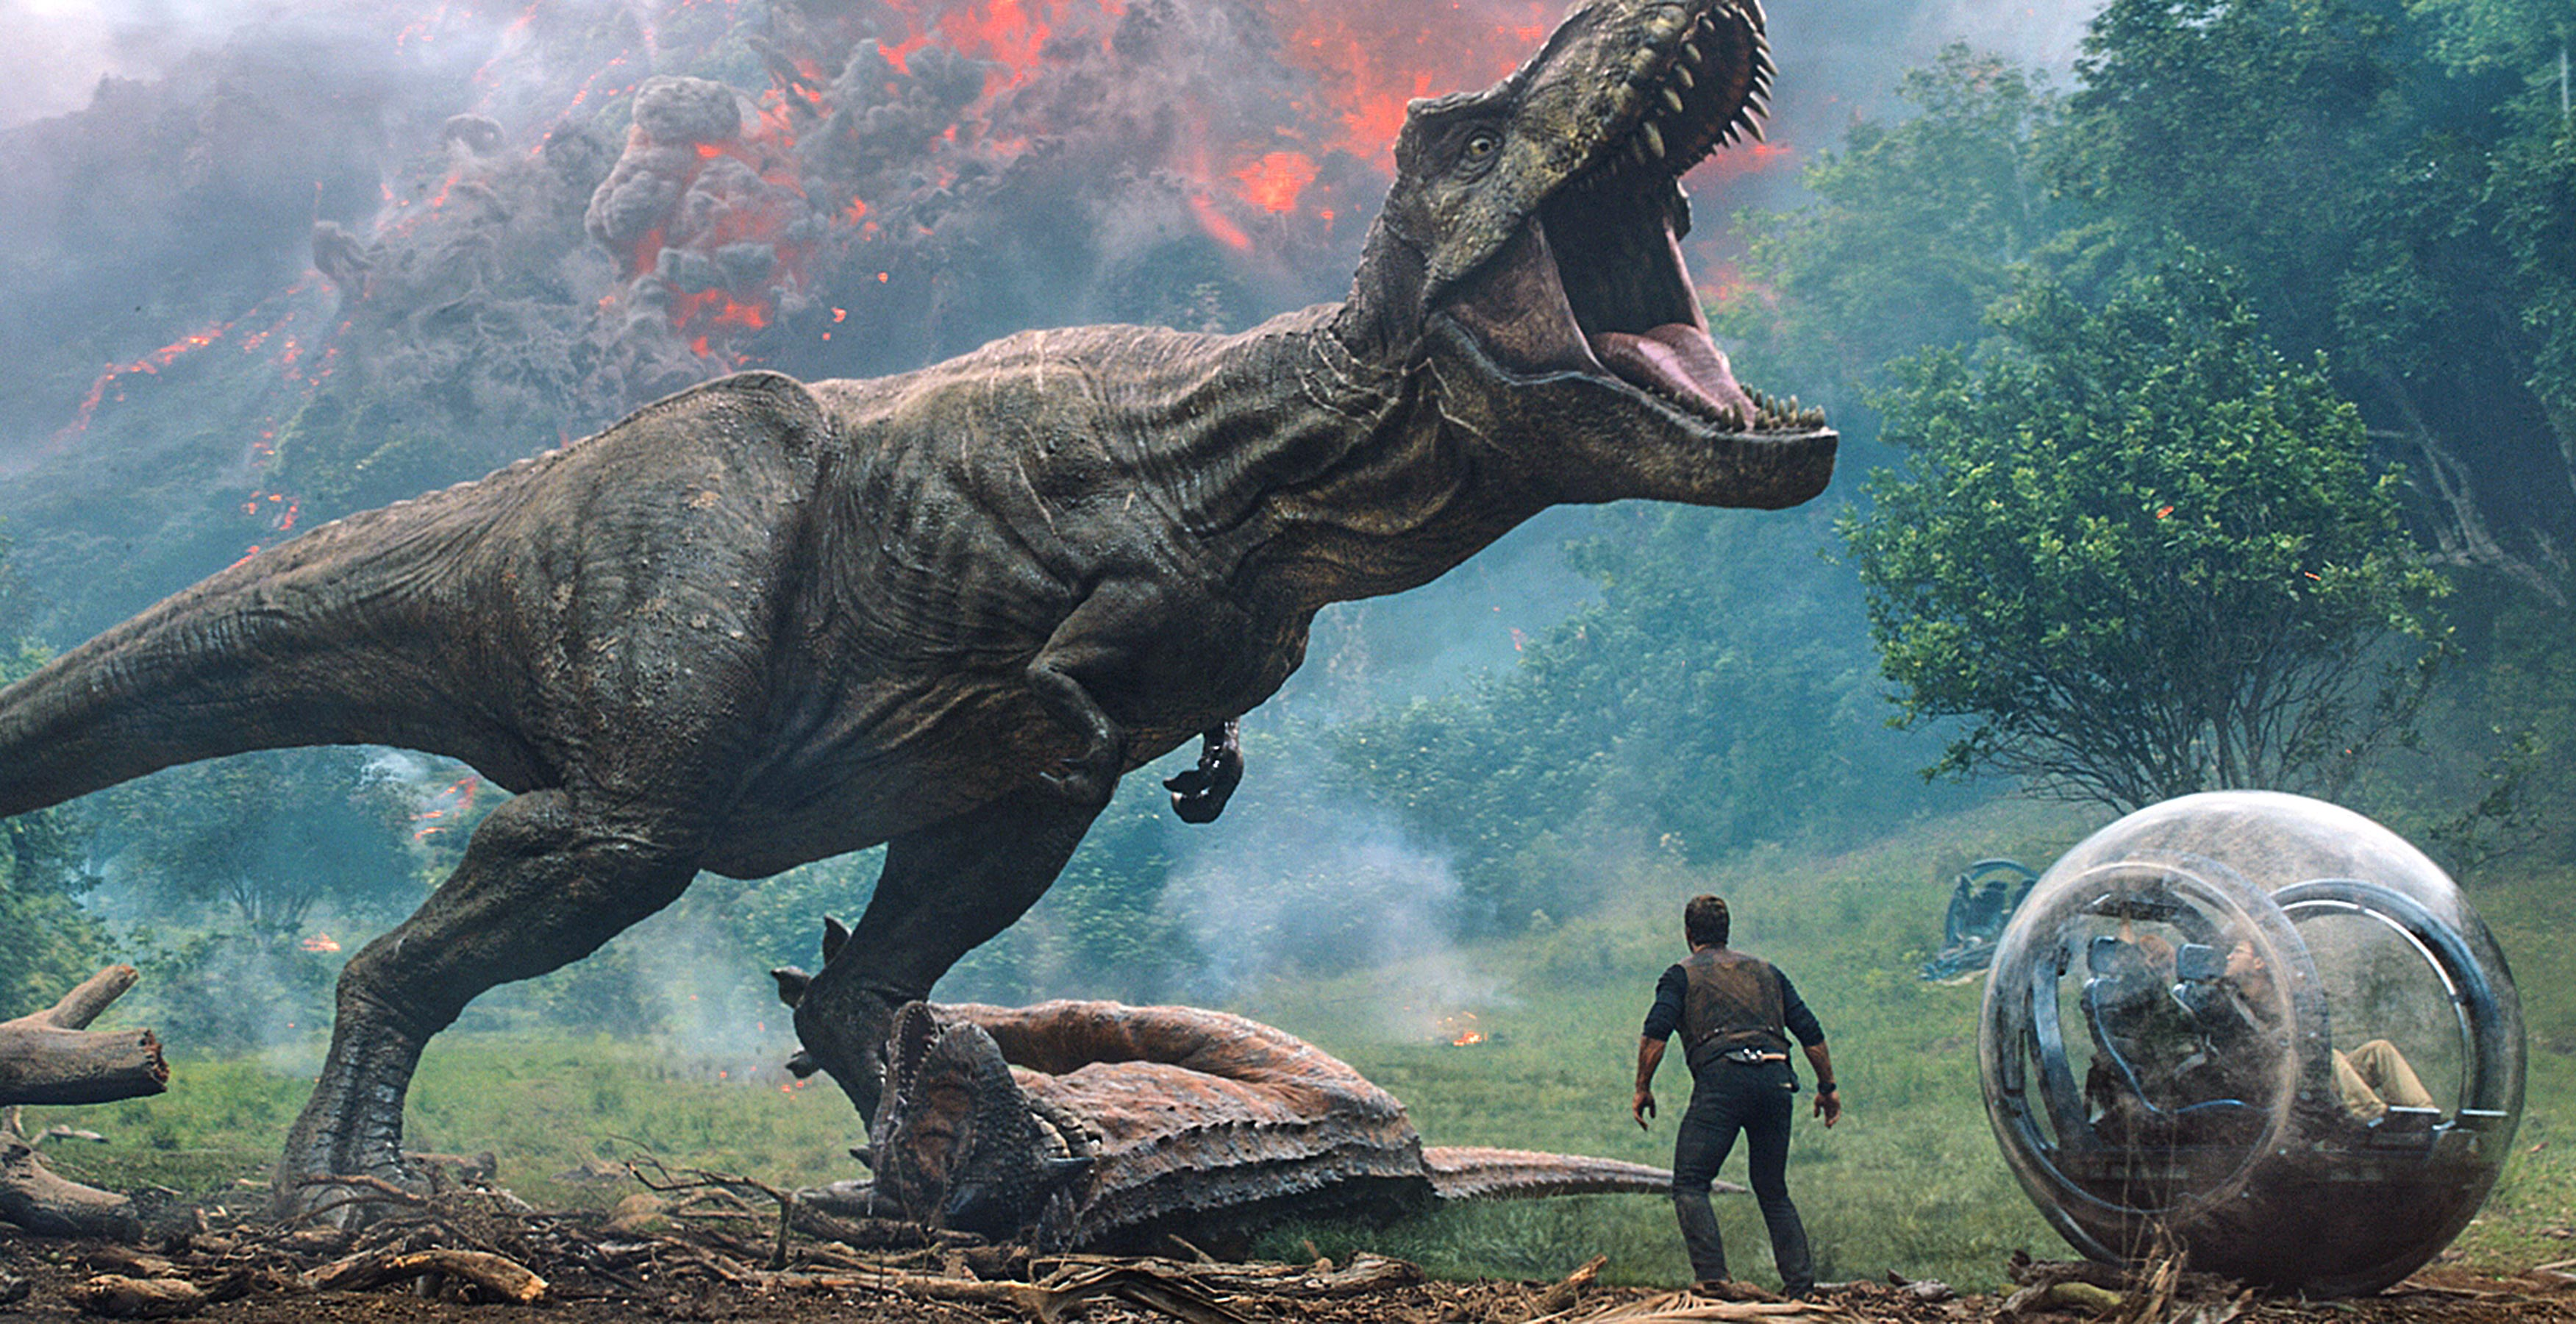 Jurassic World: Fallen Kingdom is the feel-bad blockbuster of the summer